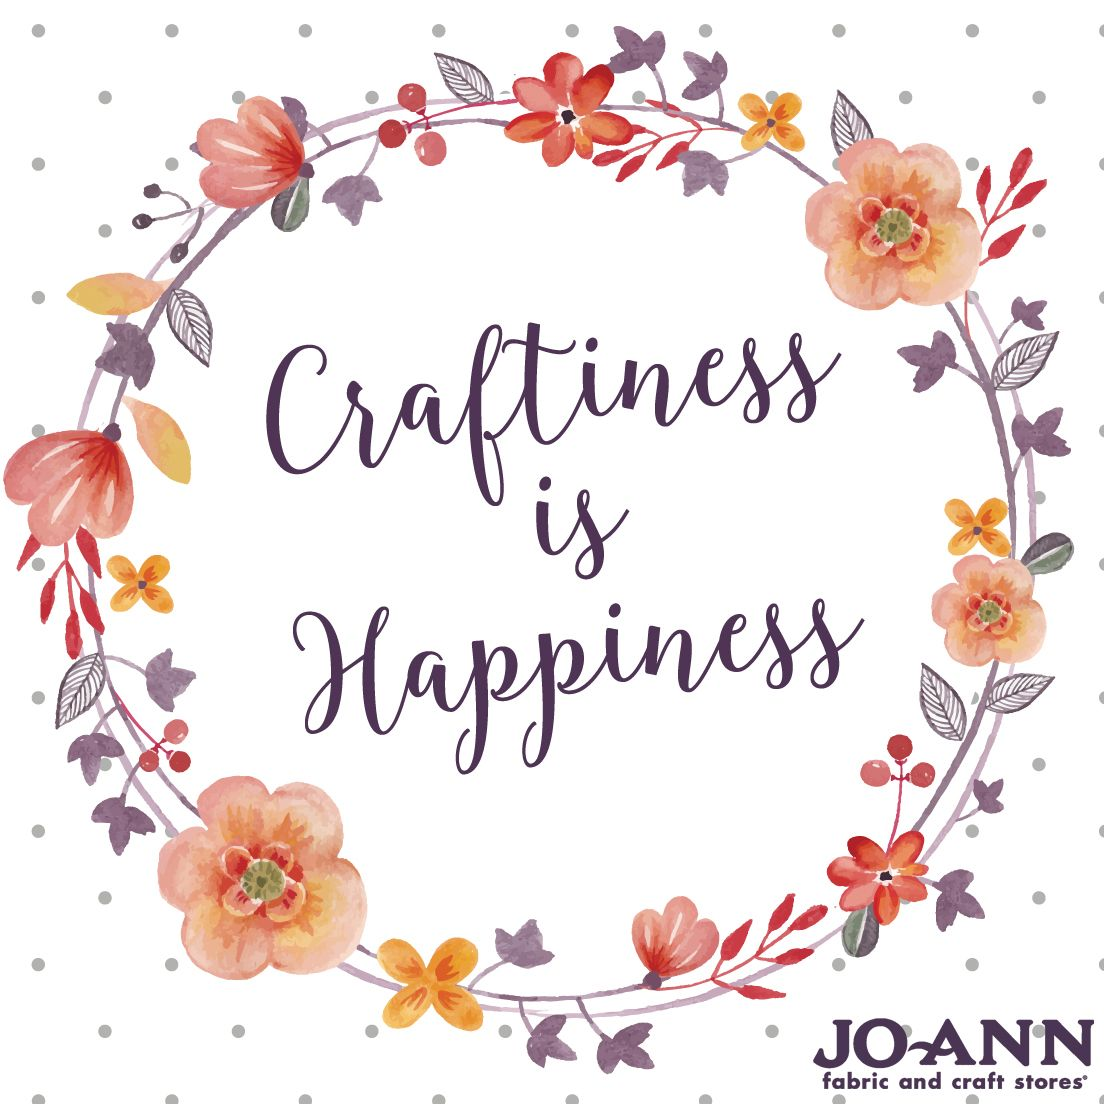 Happiness Is Homemade Home Decor Print Kitchen Quote: Craftiness Is Happiness! Our #MondayMantra!